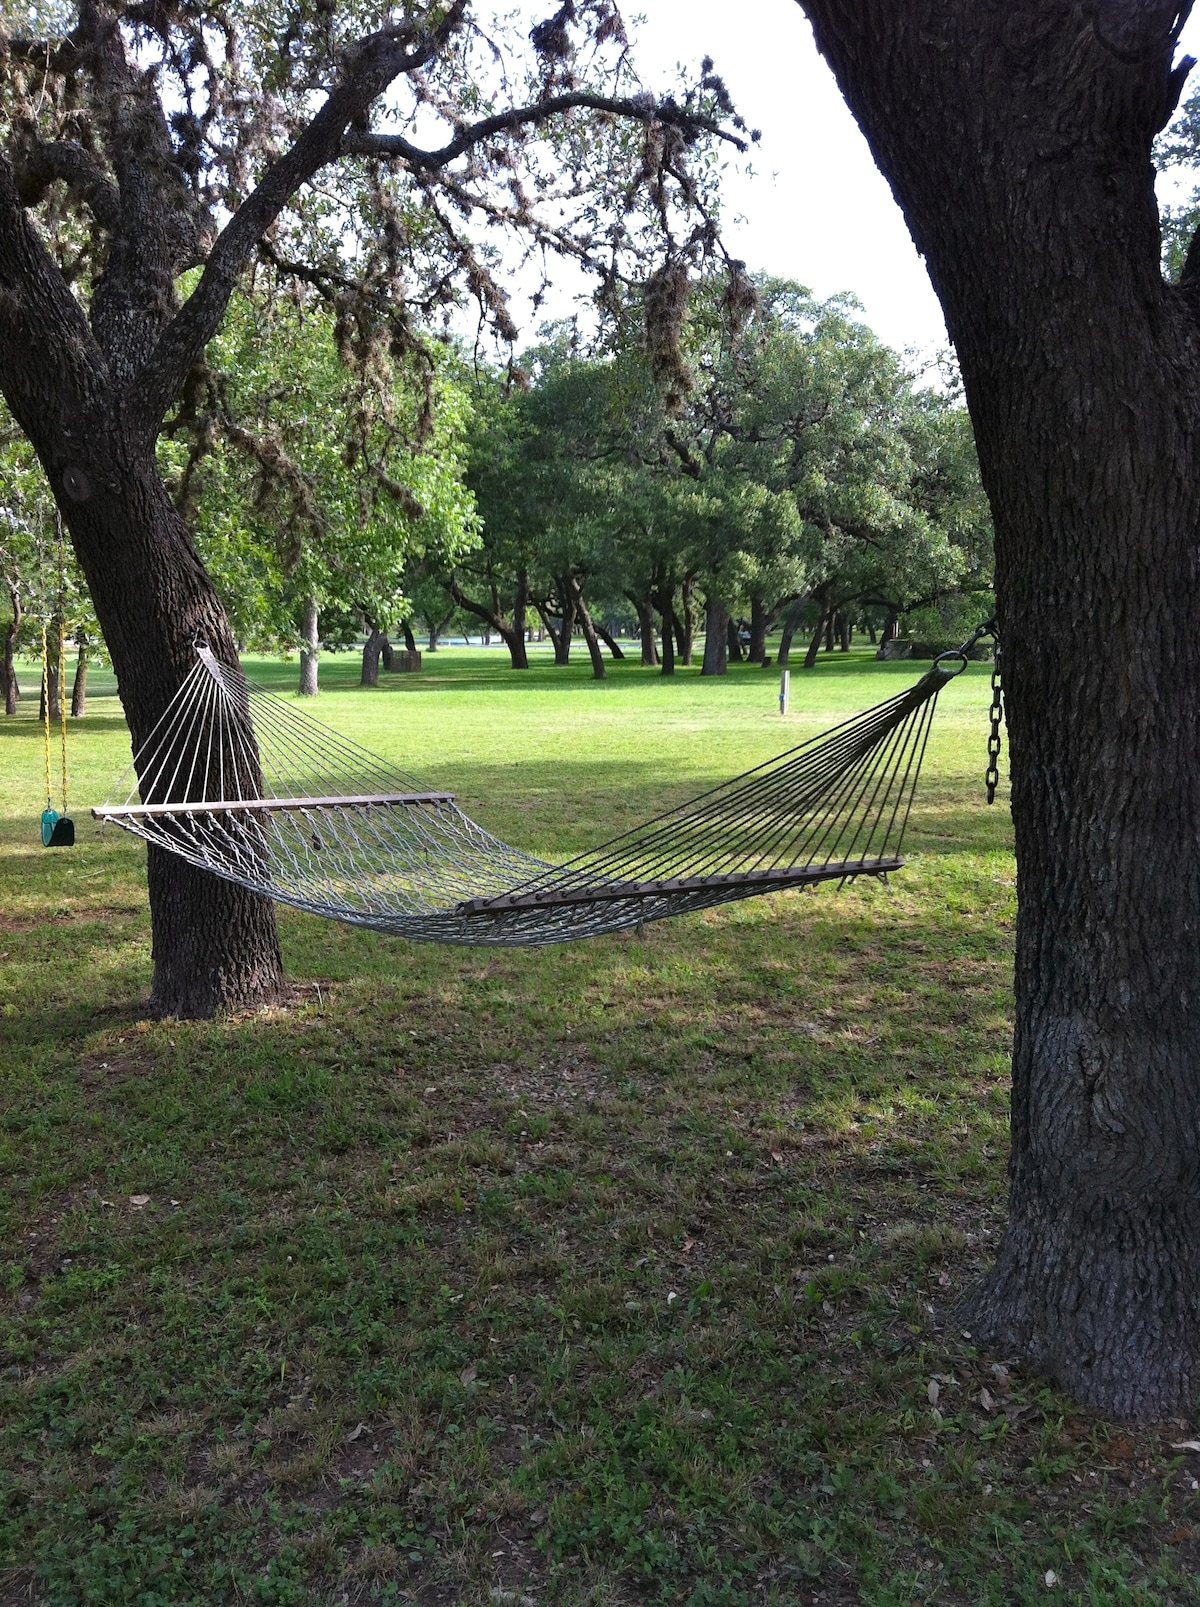 Relax in the hammock and listen to the birds sing and the river go across the dam.